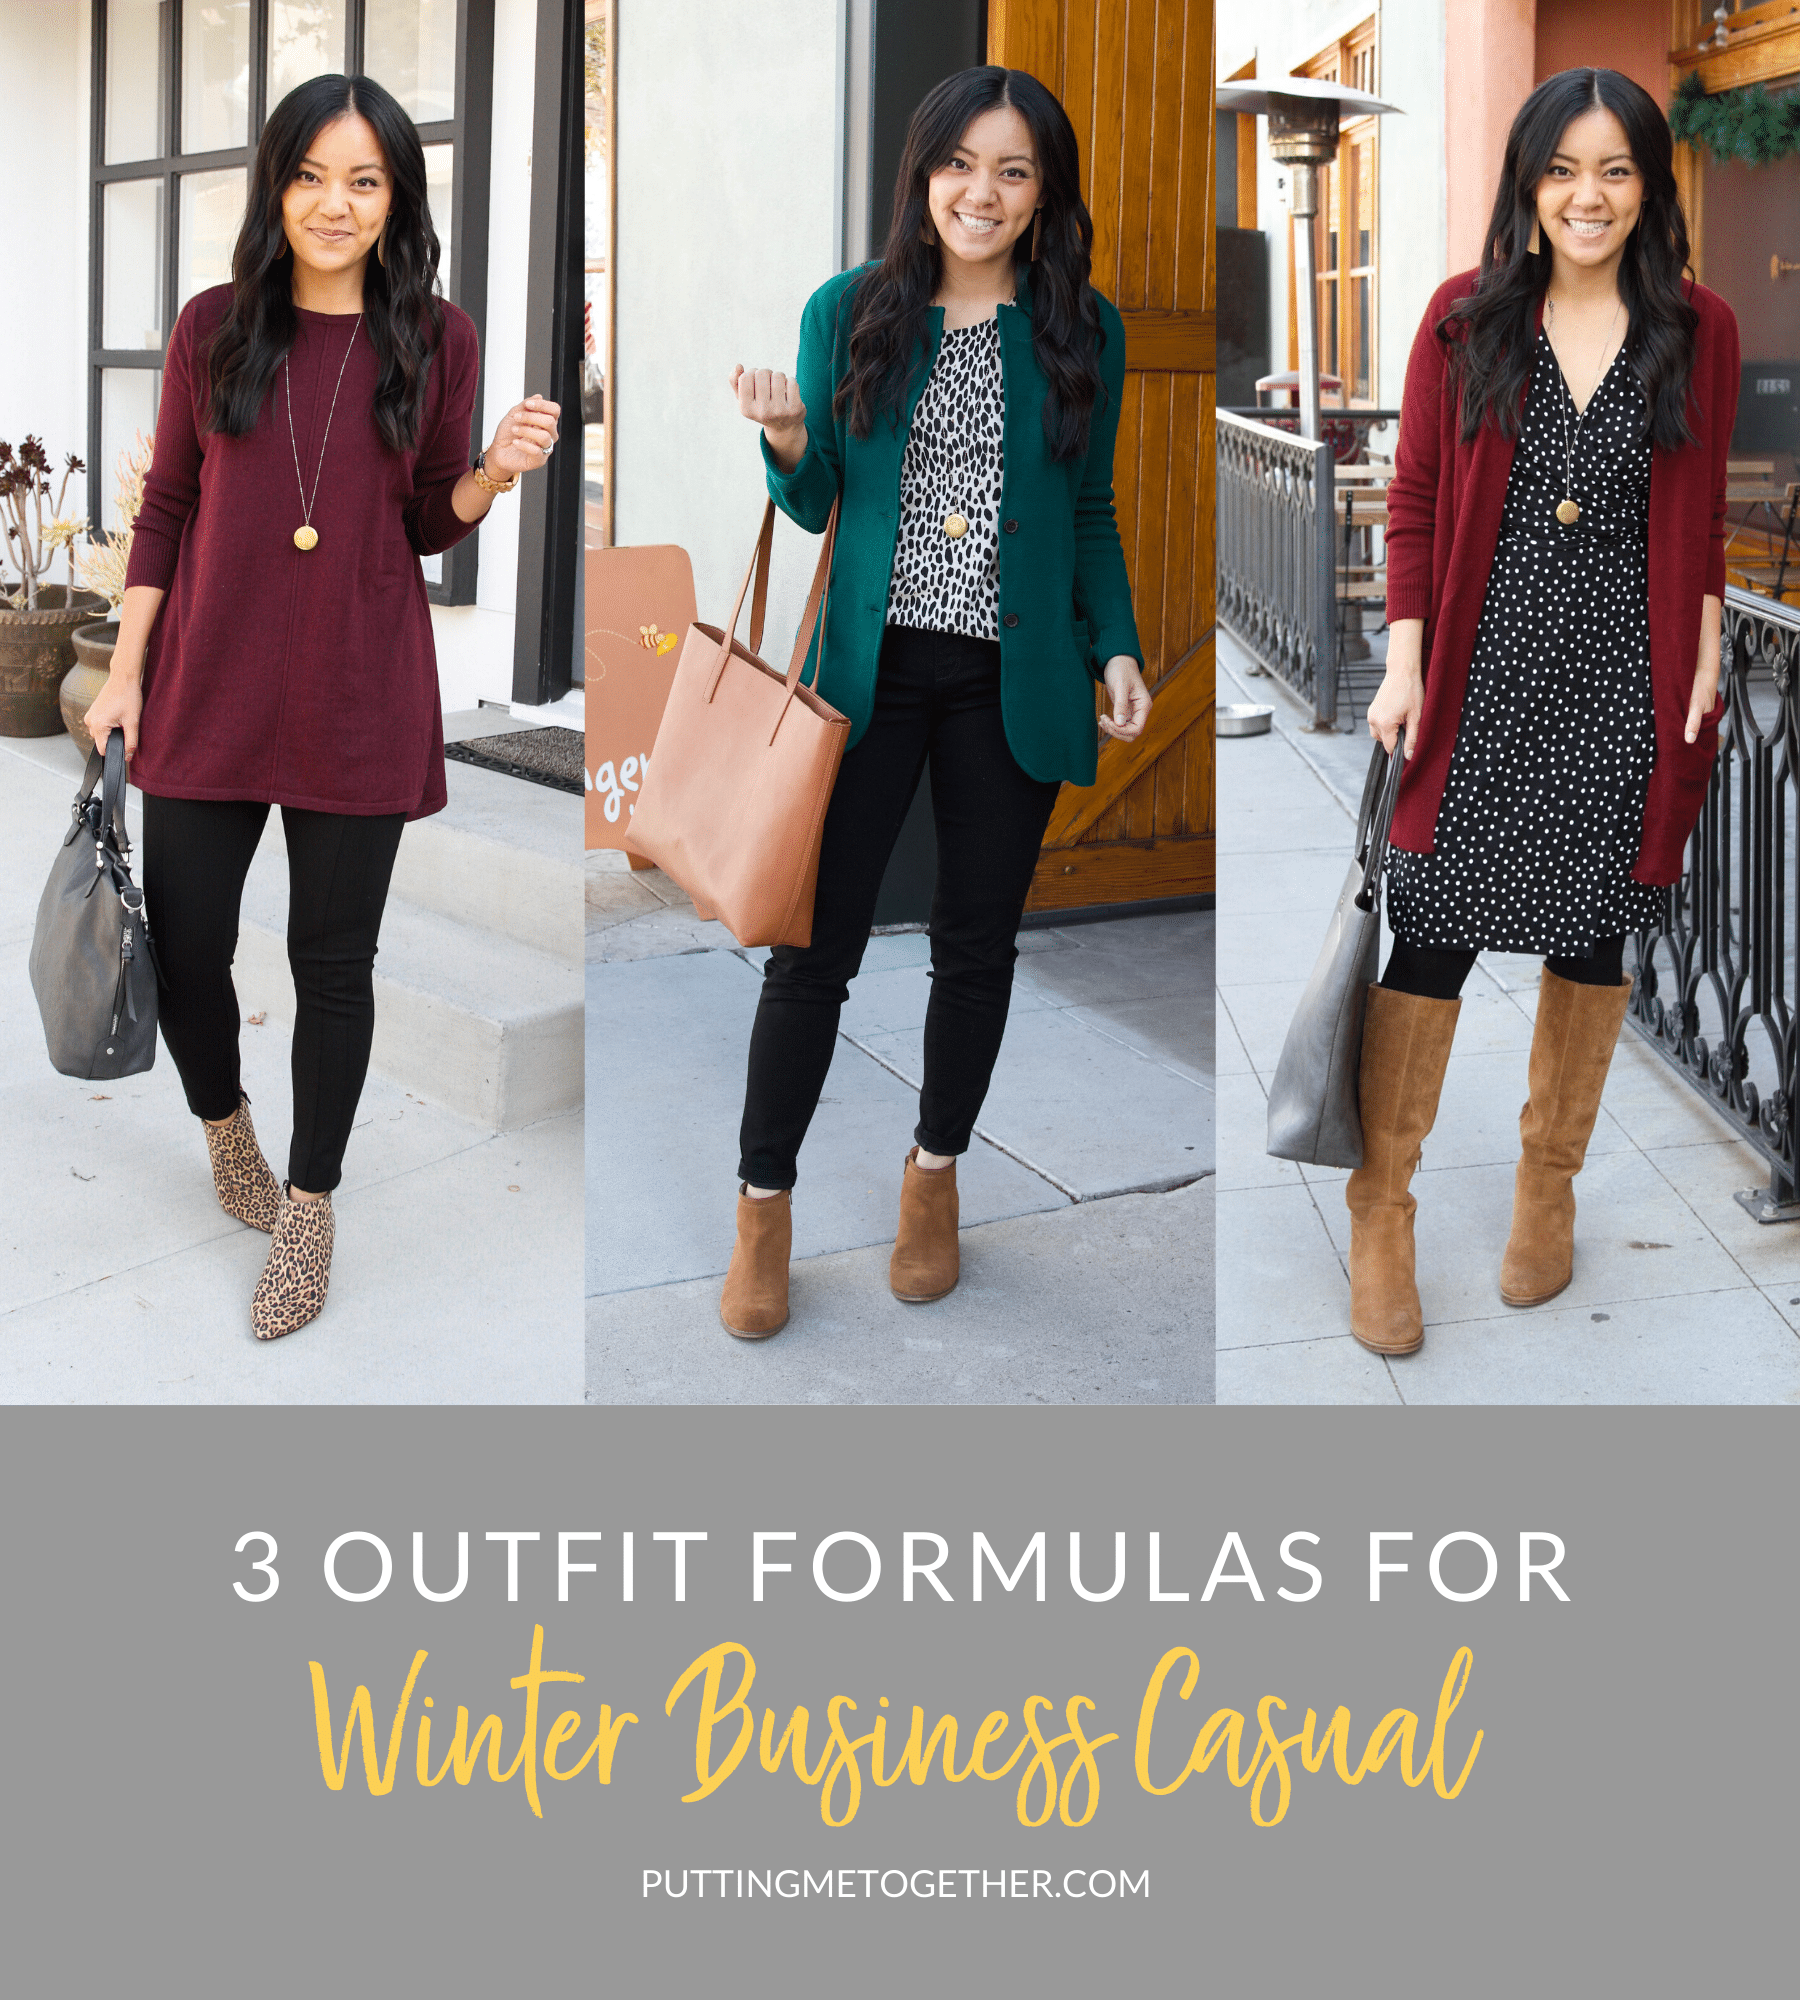 3 Outfit Formulas for Winter business casual